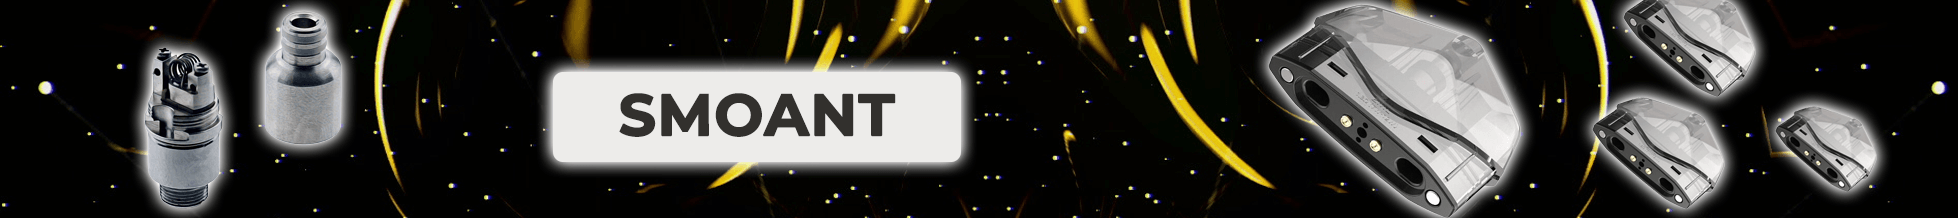 spmant-category-banner.png